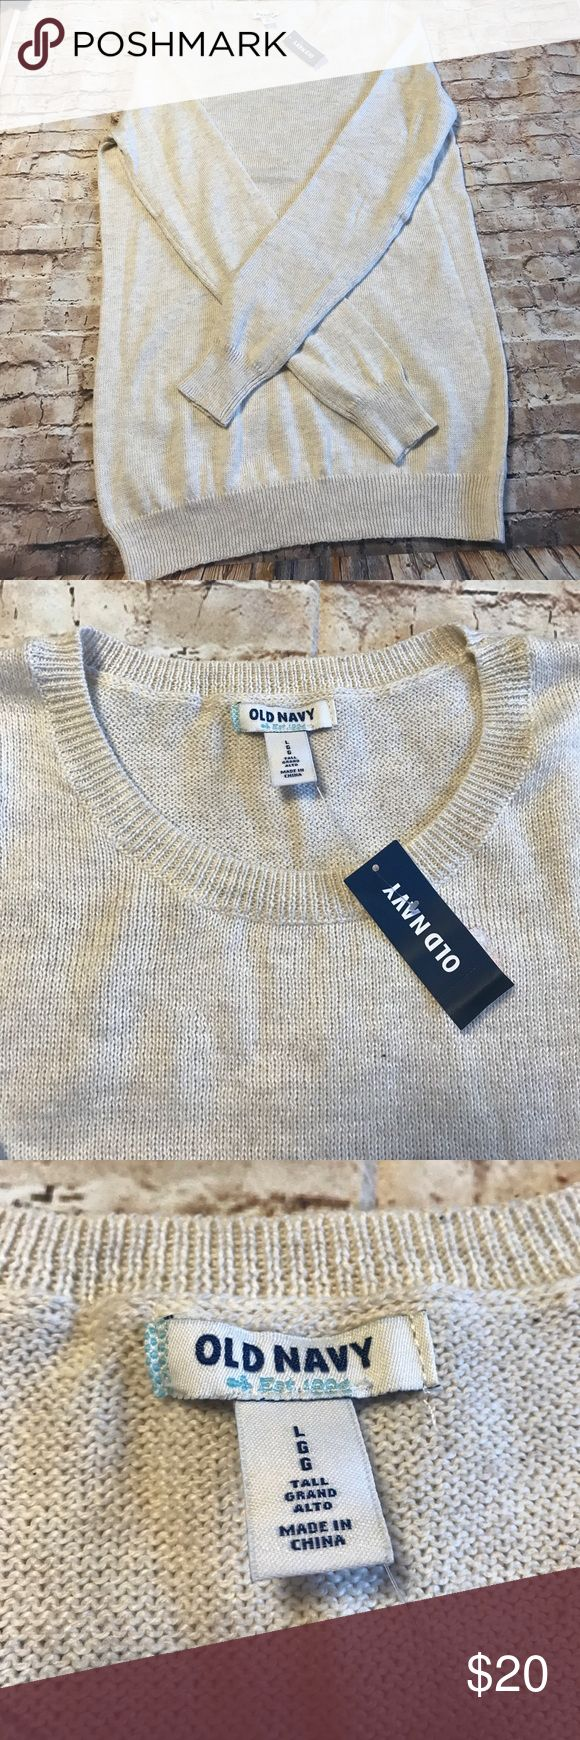 Old Navy Sweater Old Navy Sweater. New with tags. 🚫No trades. 🚫No Modeling. 🚭 Smoke-free home. 📐 Available upon request. ✅All reasonable offers accepted. 💕Thank you for viewing my item. Old Navy Sweaters Crew & Scoop Necks